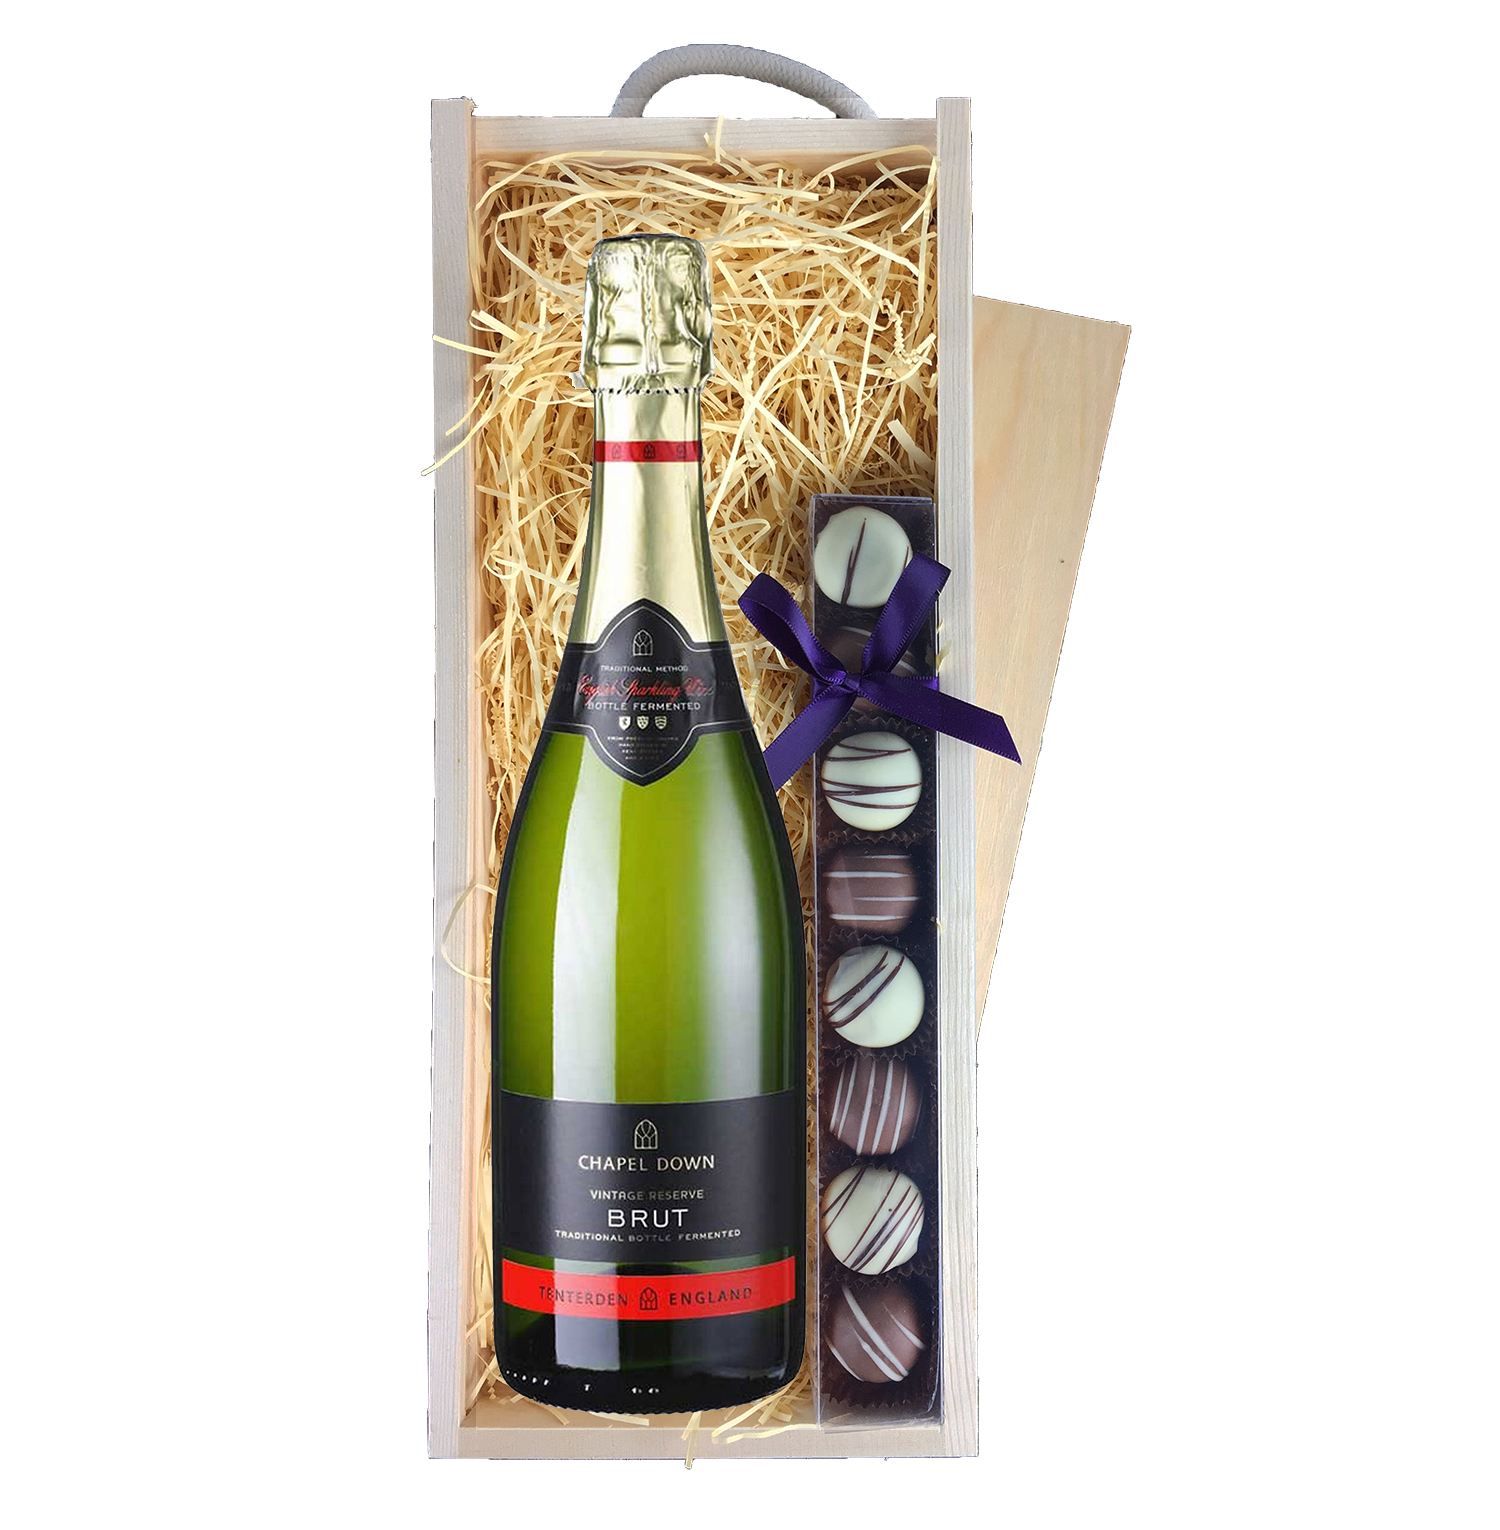 Chapel Down Brut Truffles Wooden Box Sparkling Wine Gifts